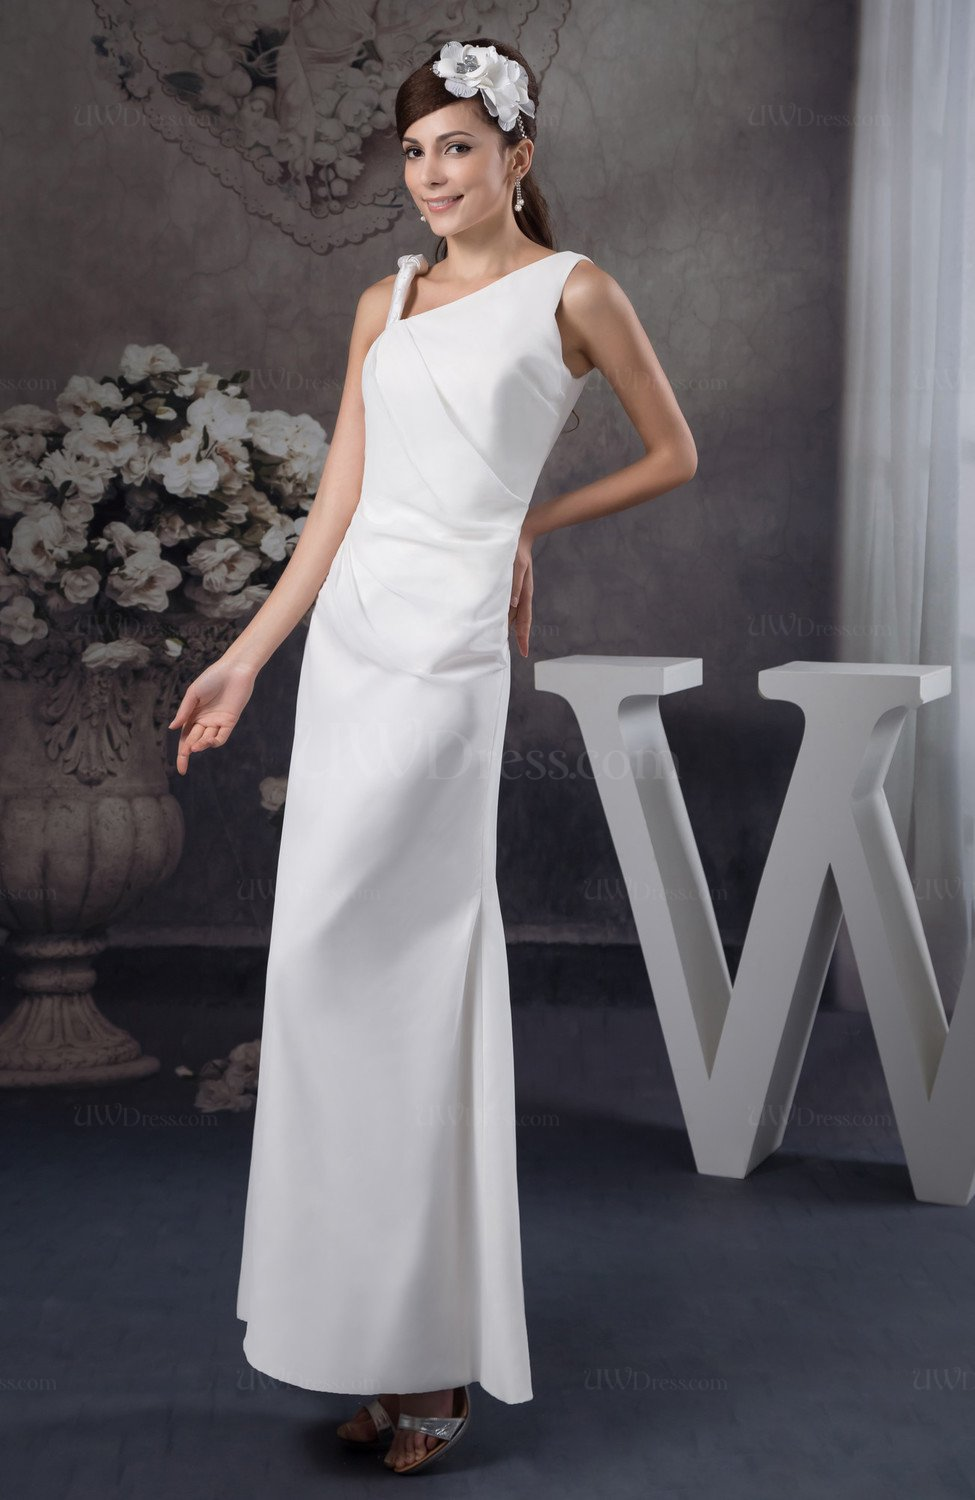 White Country Bridesmaid Dress Beach Ankle Length Plain